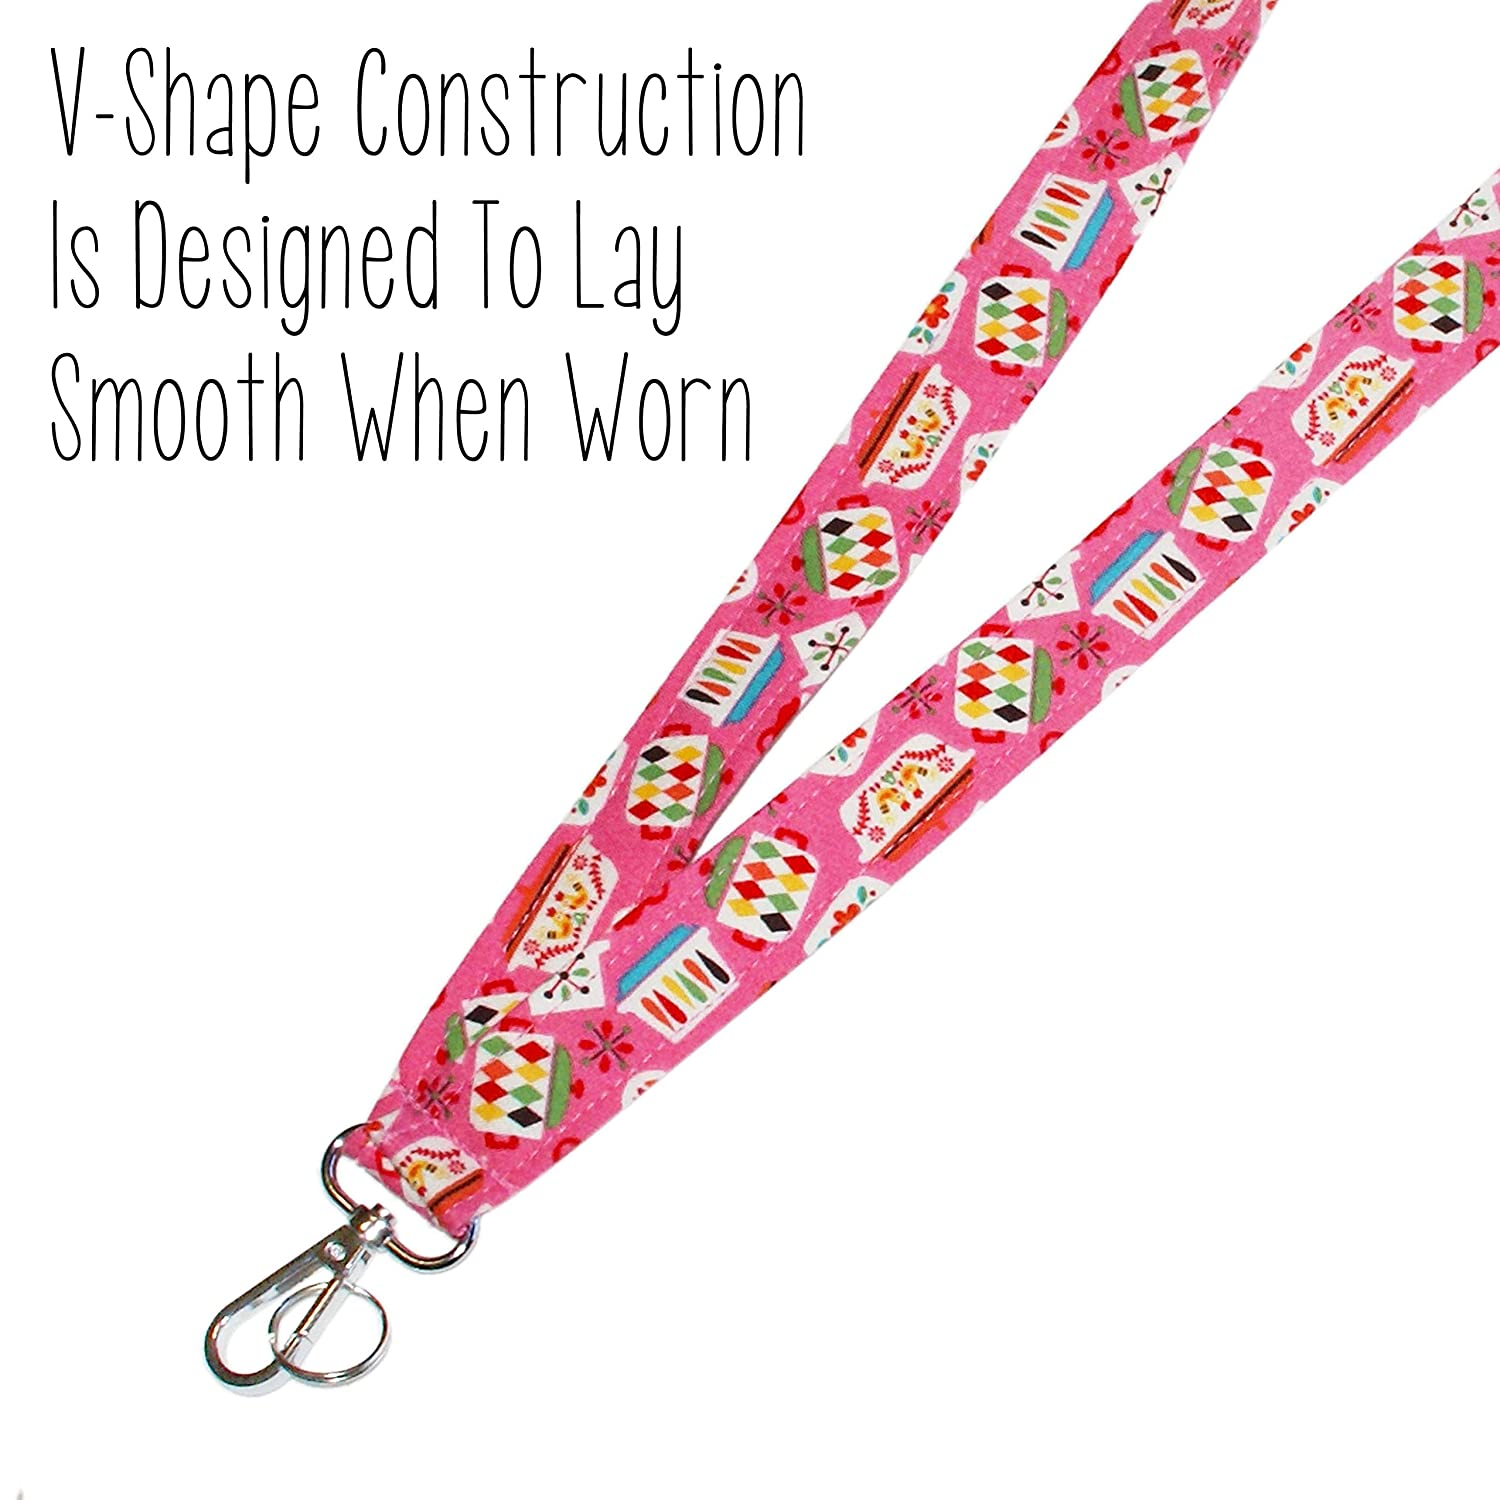 Vintage Dishes Lanyard Key Lanyard ID Badge Holder Retro Kitchen Lanyard Pink Pyrex Neck Strap 1 x 36 Inch With Swivel Clip Gift For Cook or Chef